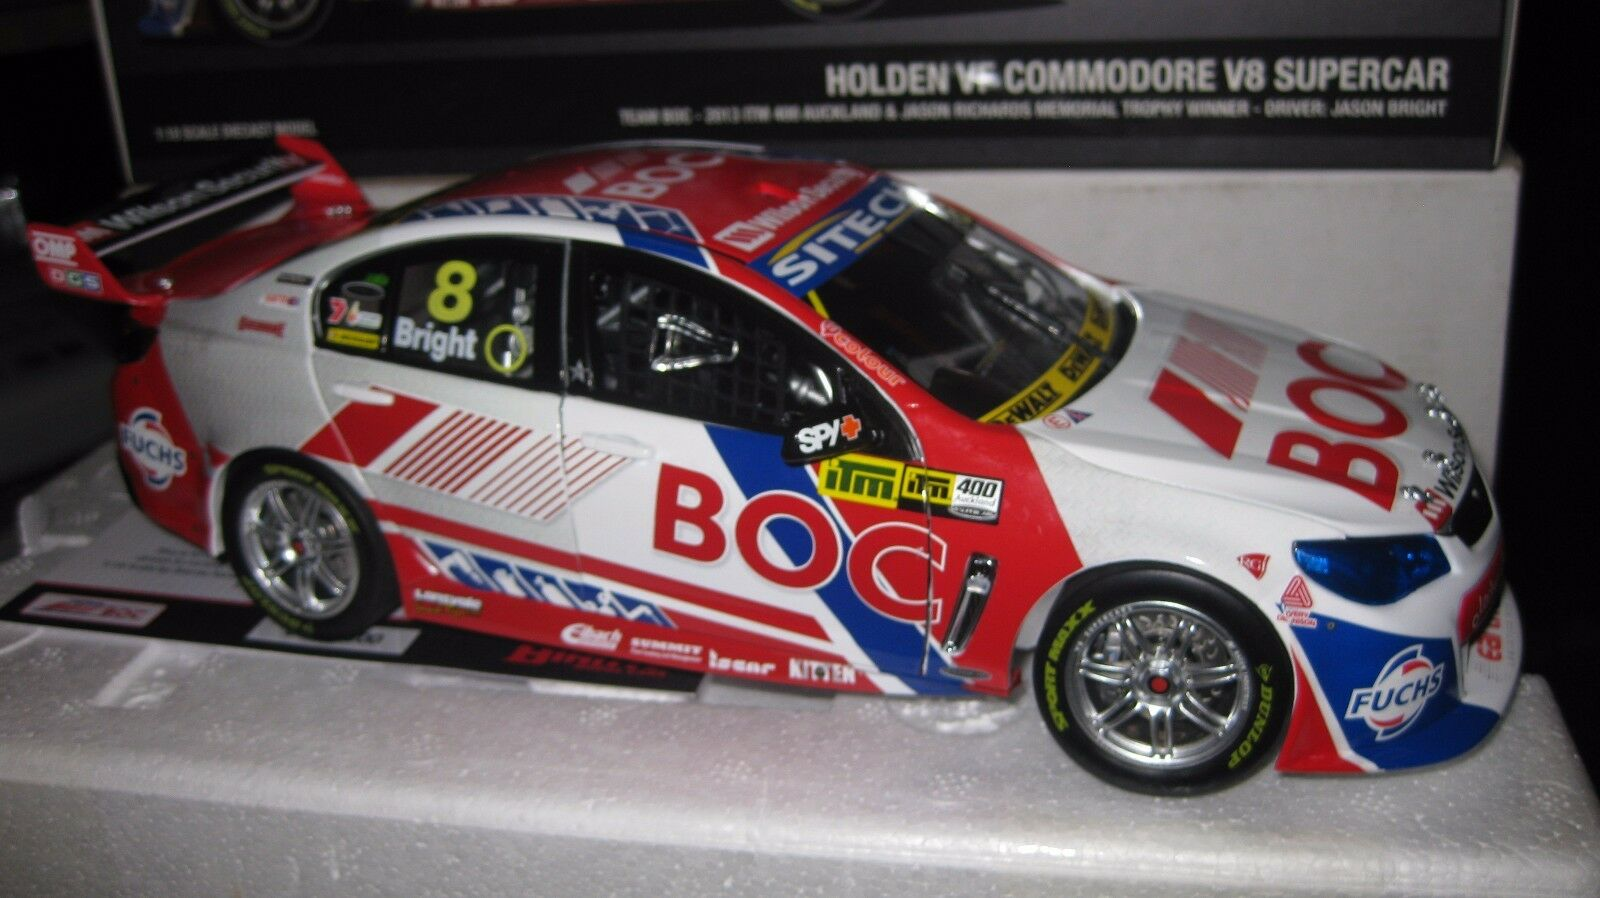 Biante 1   18. holden commodore 2013 nach hellen itm nz richards memorial trophy gewinnen